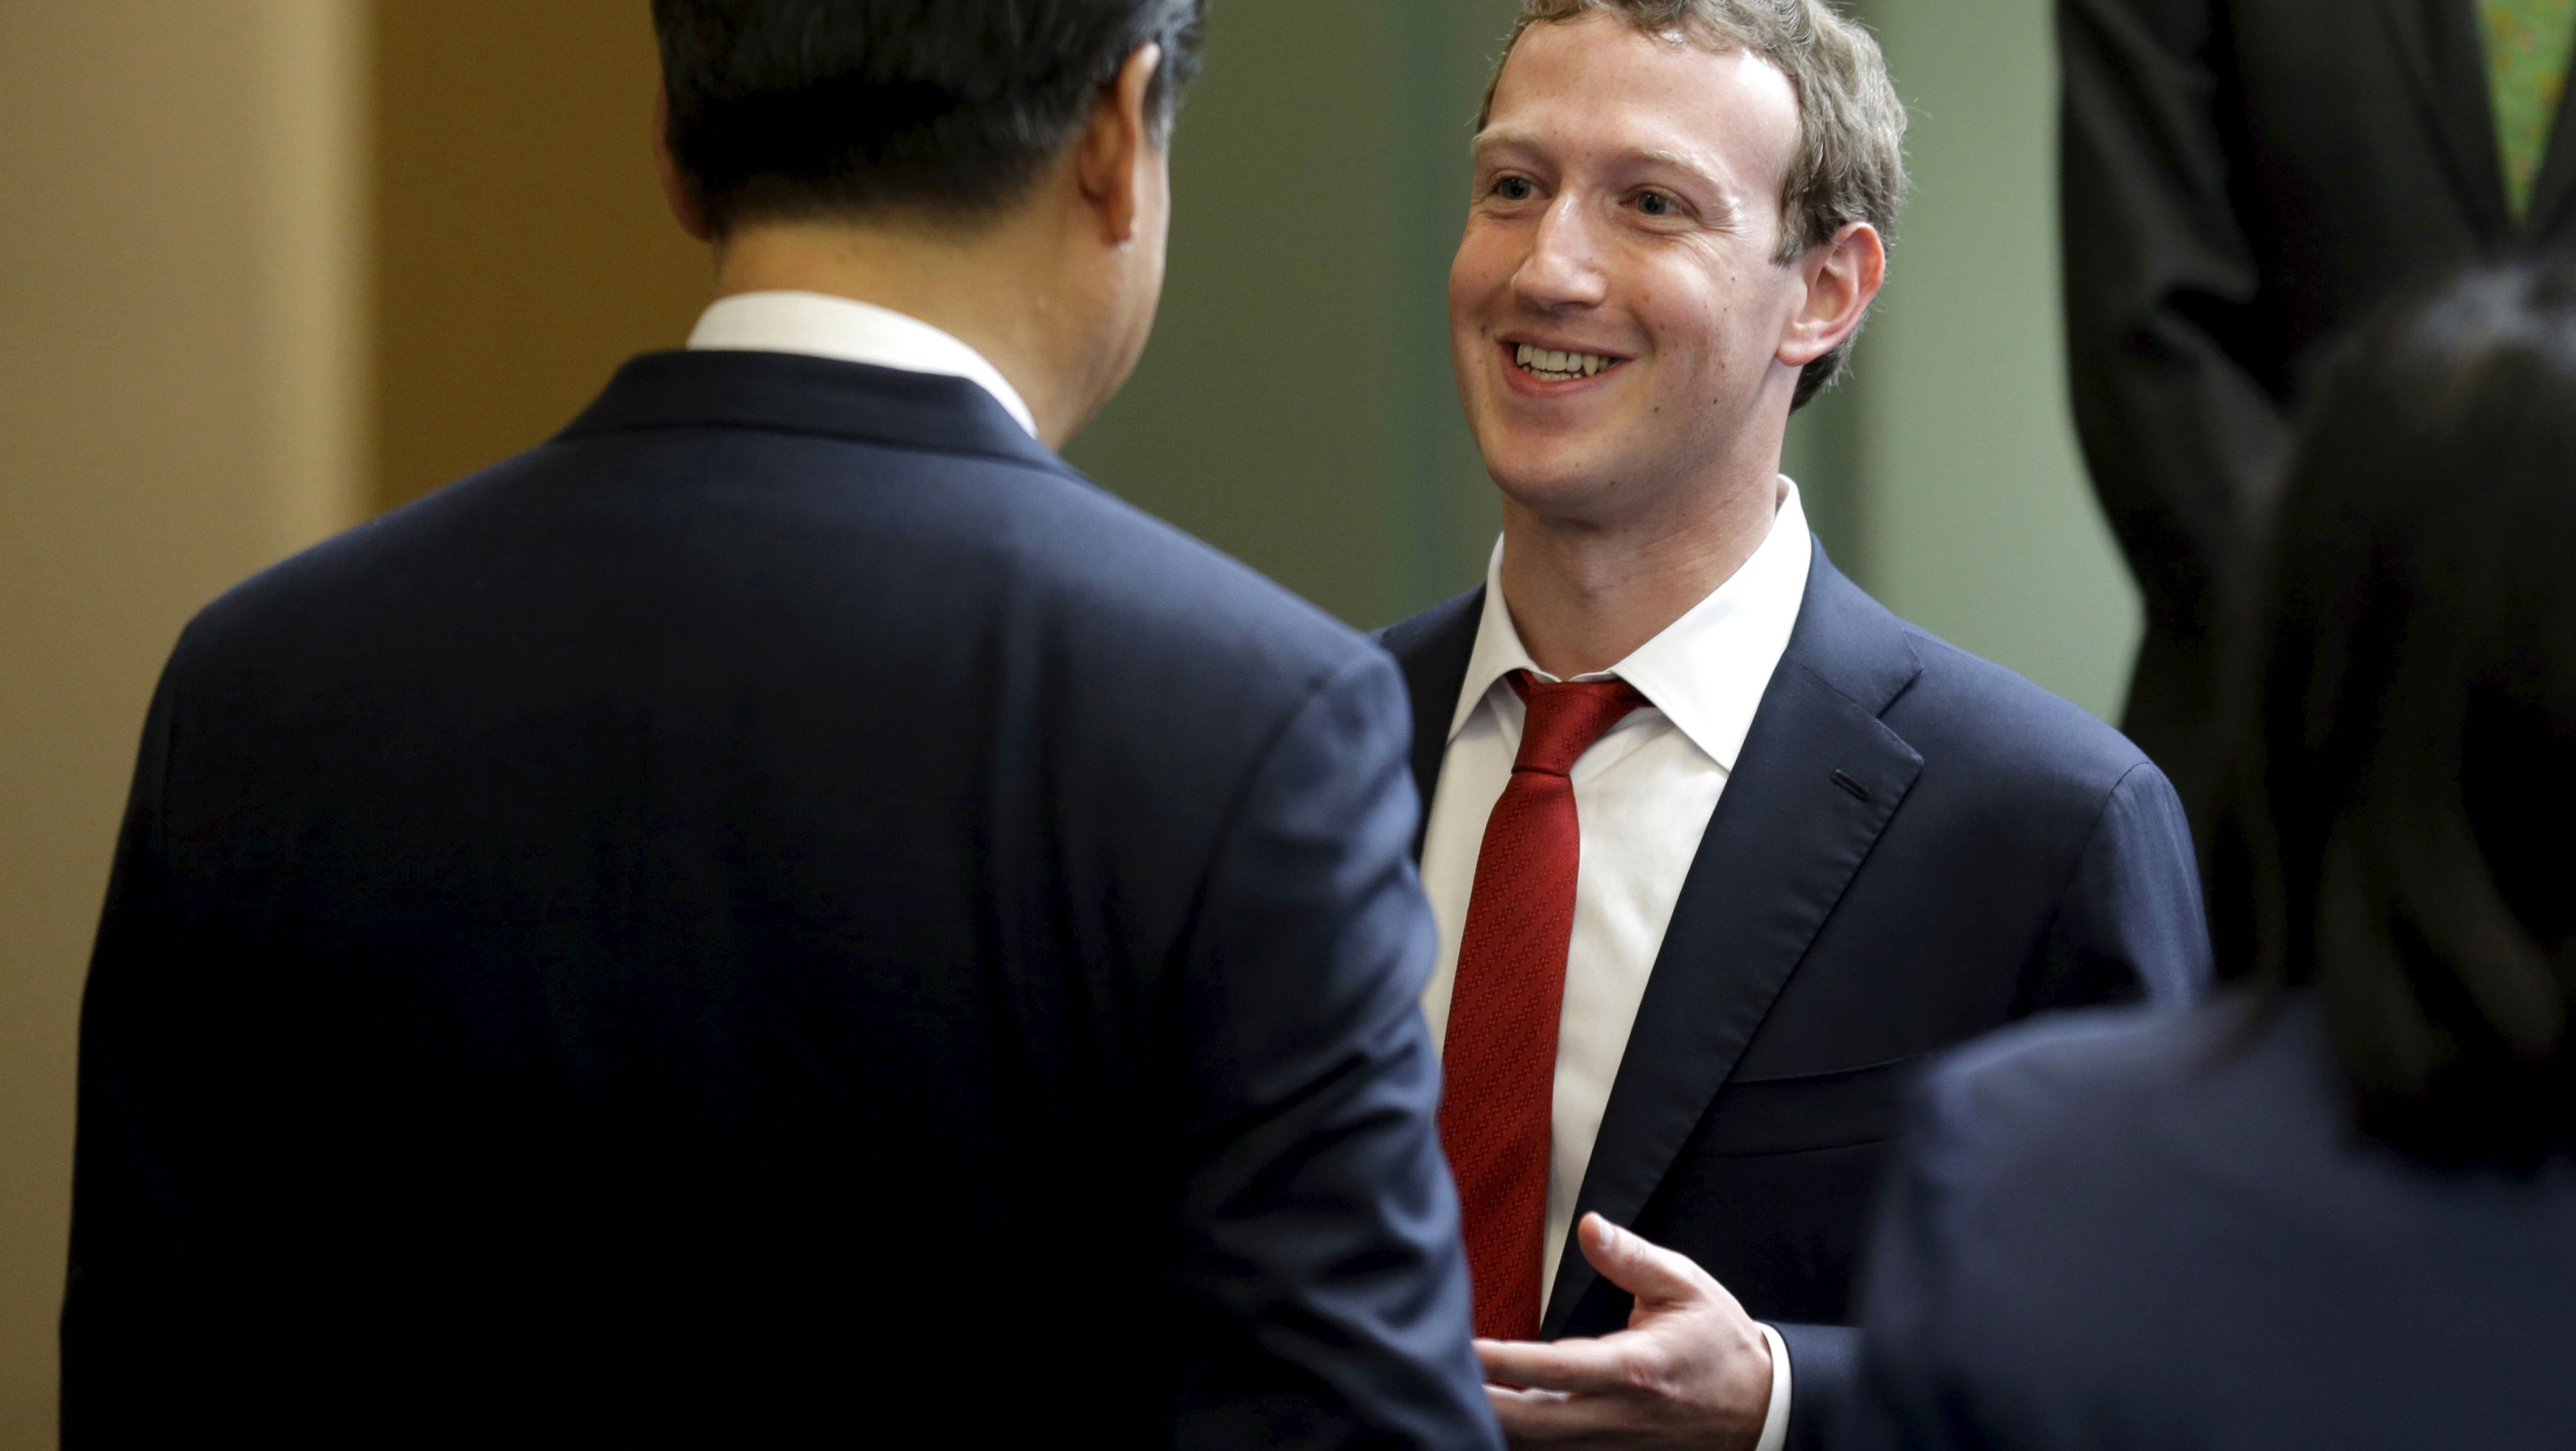 Chinese President Xi Jinping (L) talks with Facebook Chief Executive Mark Zuckerberg during a gathering of CEOs and other executives at Microsoft's main campus in Redmond, Washington September 23, 2015. REUTERS/Ted S. Warren/Pool